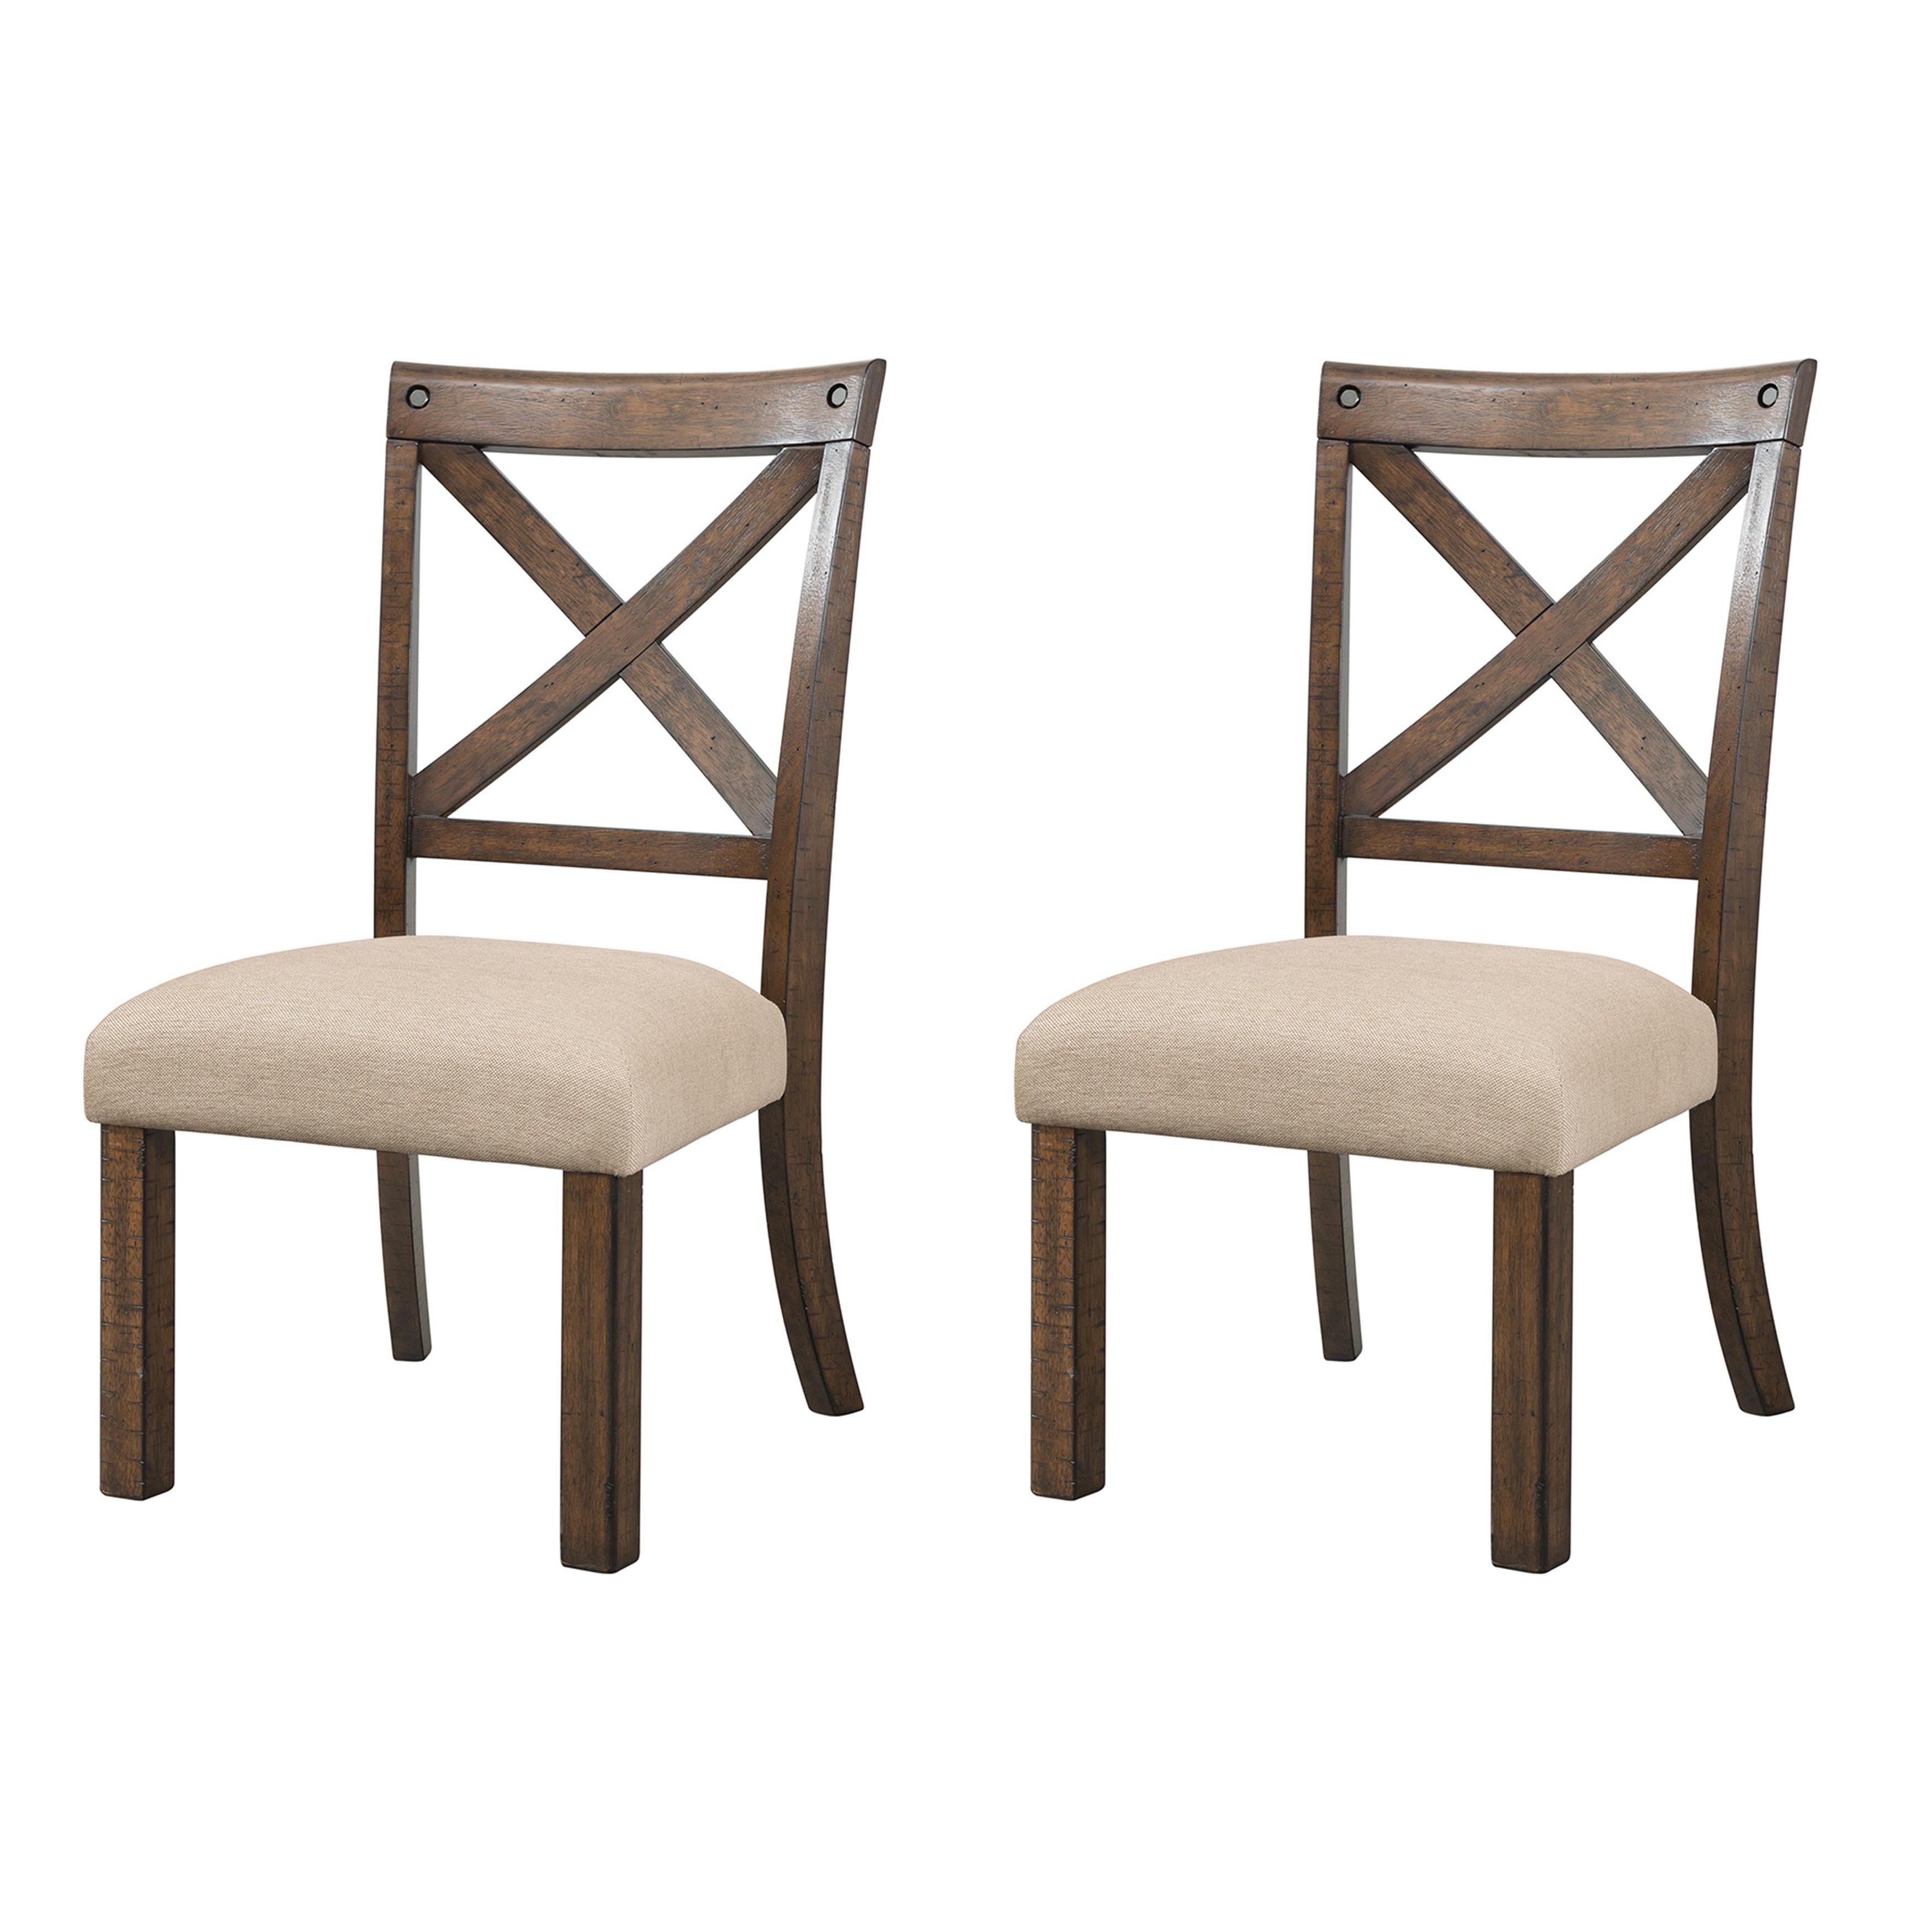 Picket house furnishings francis wooden dining chair set xback